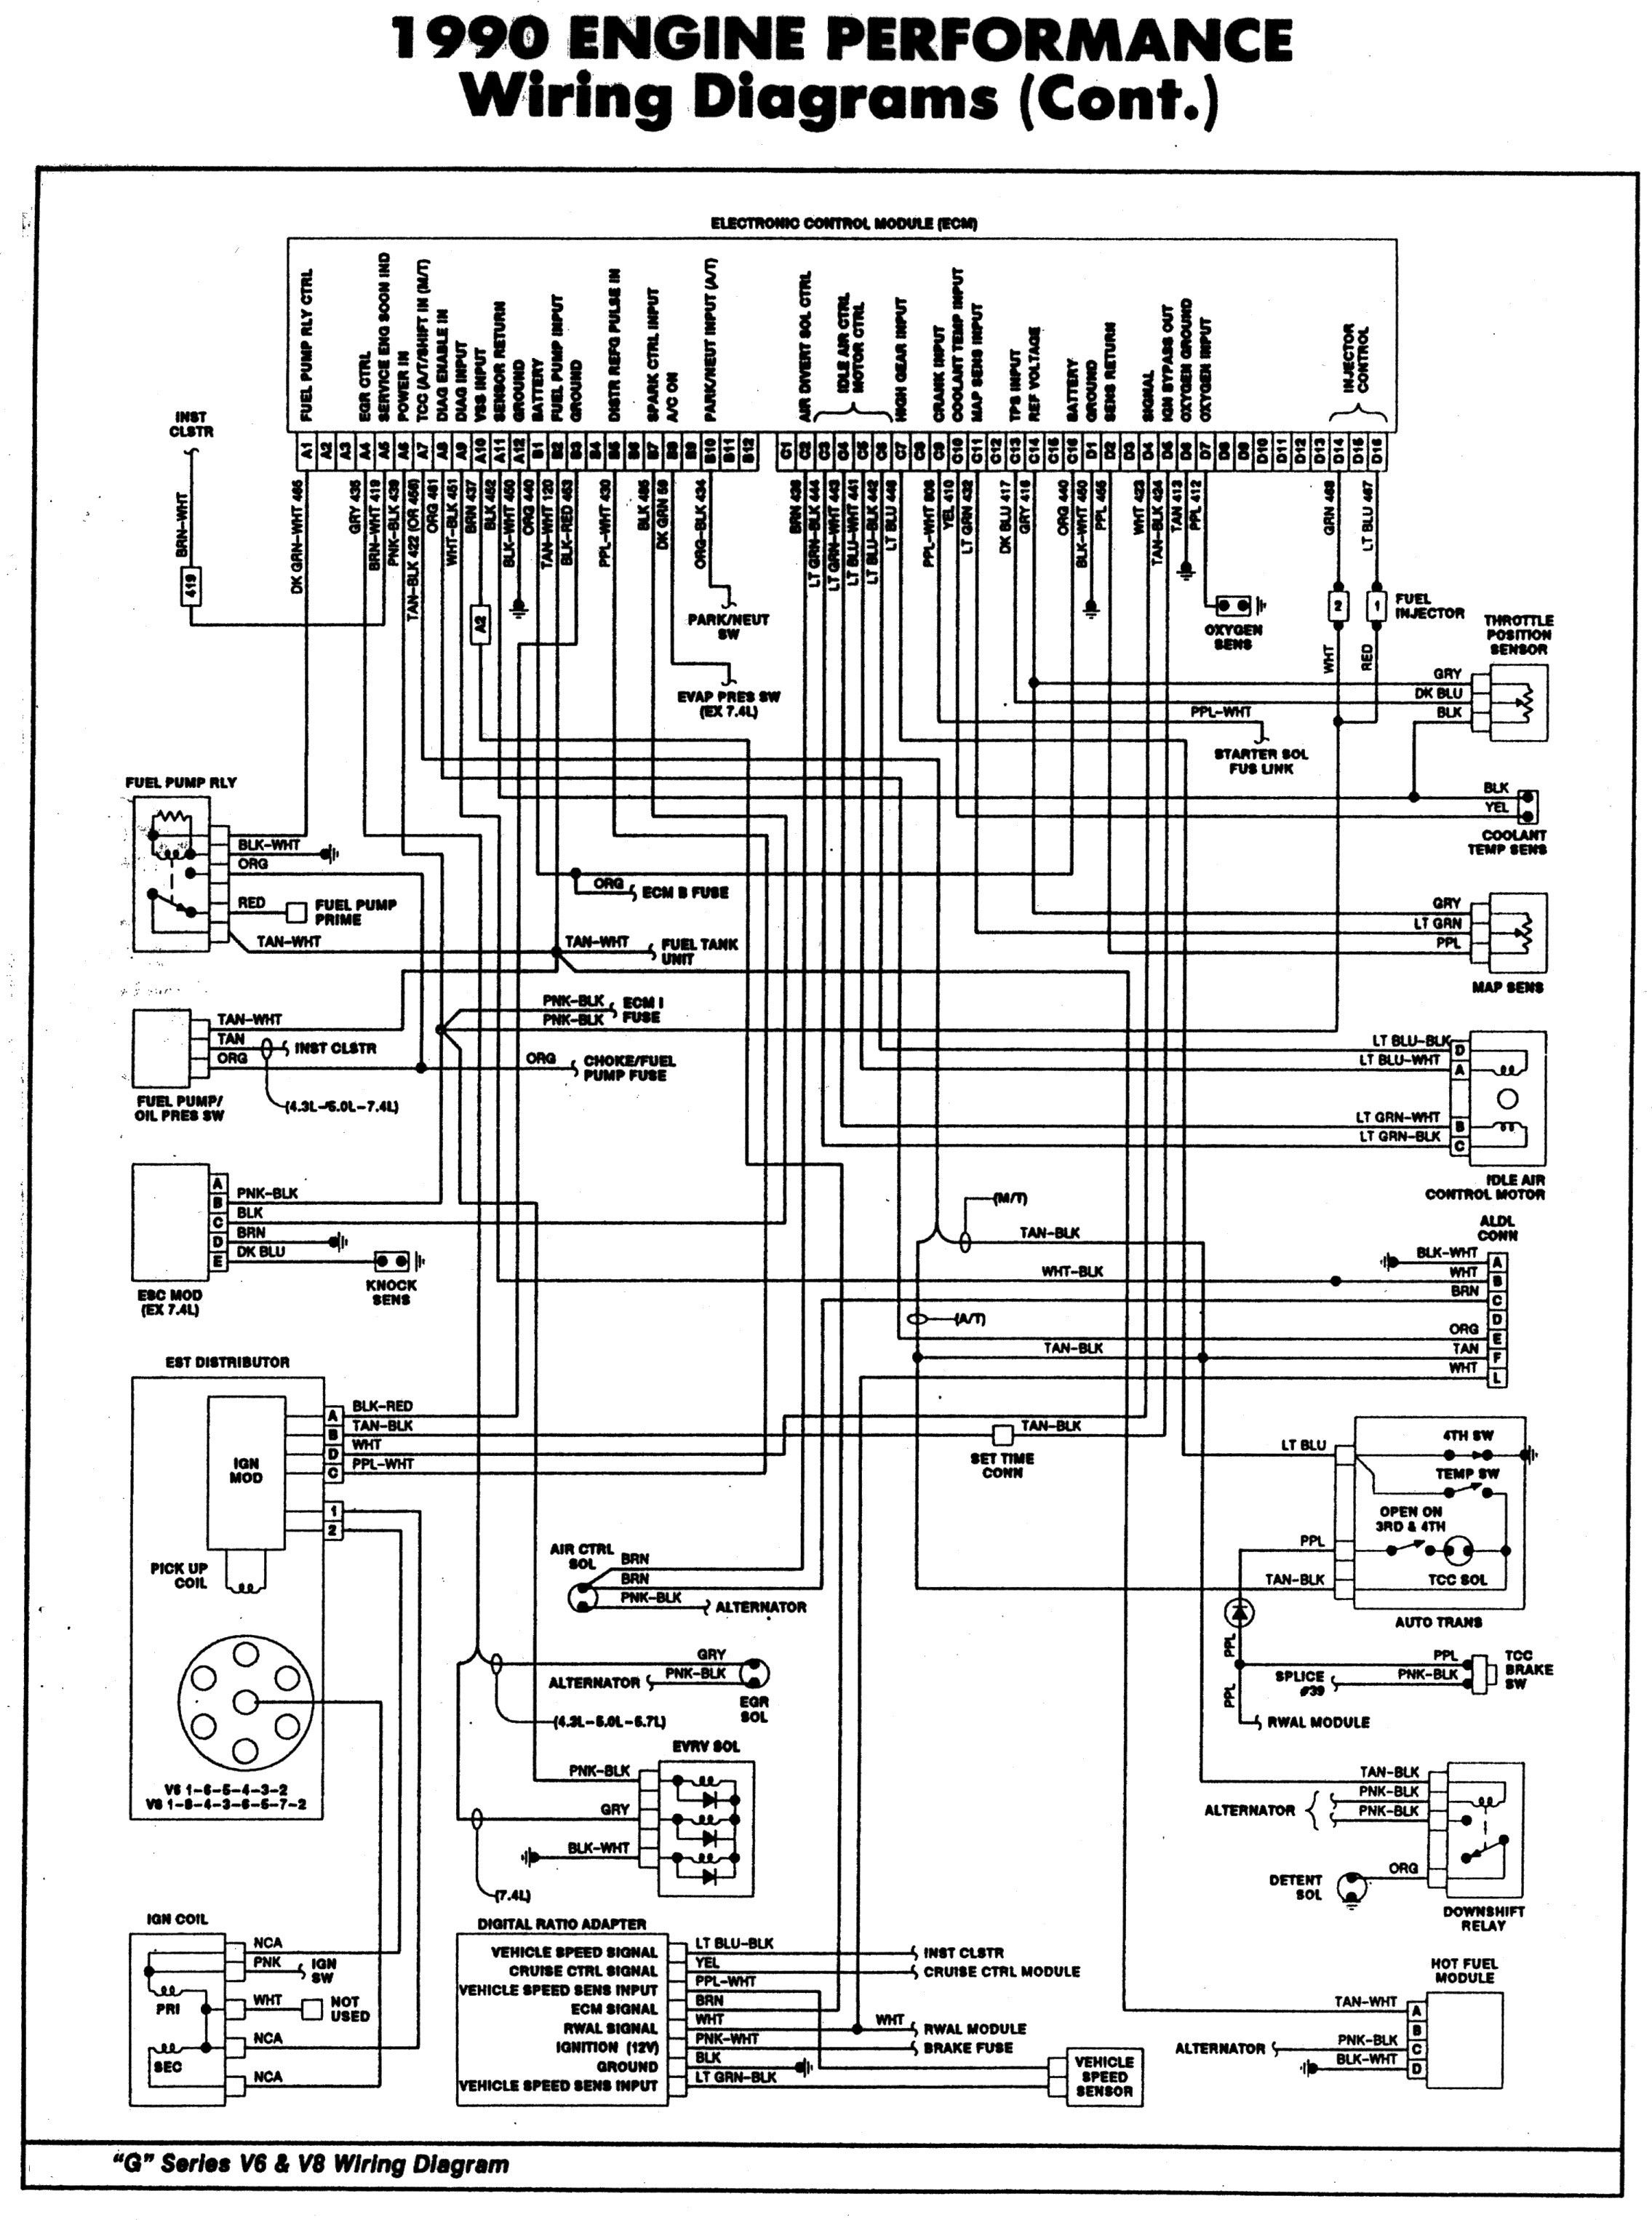 Chevy Wiring Diagrams Free - talk about wiring diagram on 1961 chevrolet truck, 1961 ford apache, 1958 gmc apache, chippewa apache, 1961 chevrolet deluxe, chevy apache, jeep apache, 1961 chevrolet stepside,